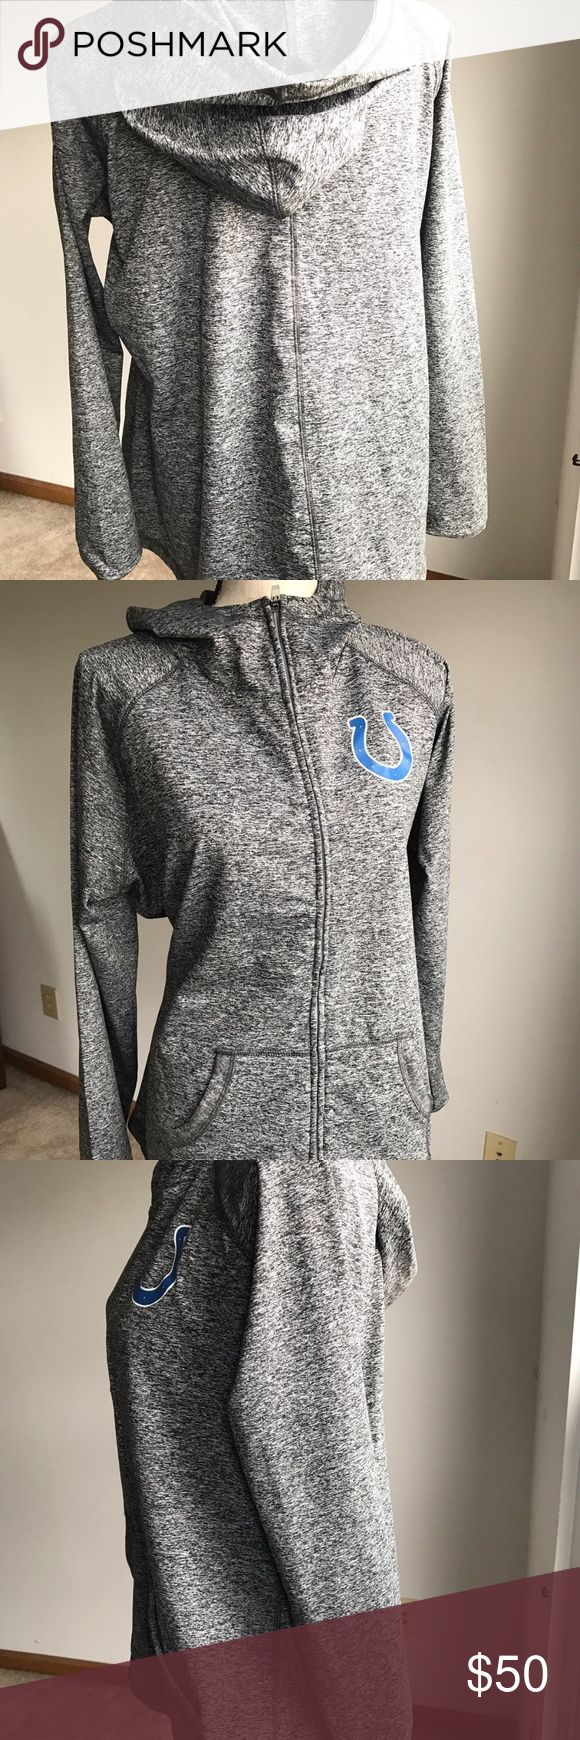 """NFL Colts Womens Sweatshirt Hooded XXL Womens Colts NFL Hooded Sweatshirt with zip front  Siz XXL  • 24"""" across chest • 25 """" across bottom hemline • 27 """" from back of neck to bottom hem  Gently Used with no flaws NFL Jackets & Coats"""